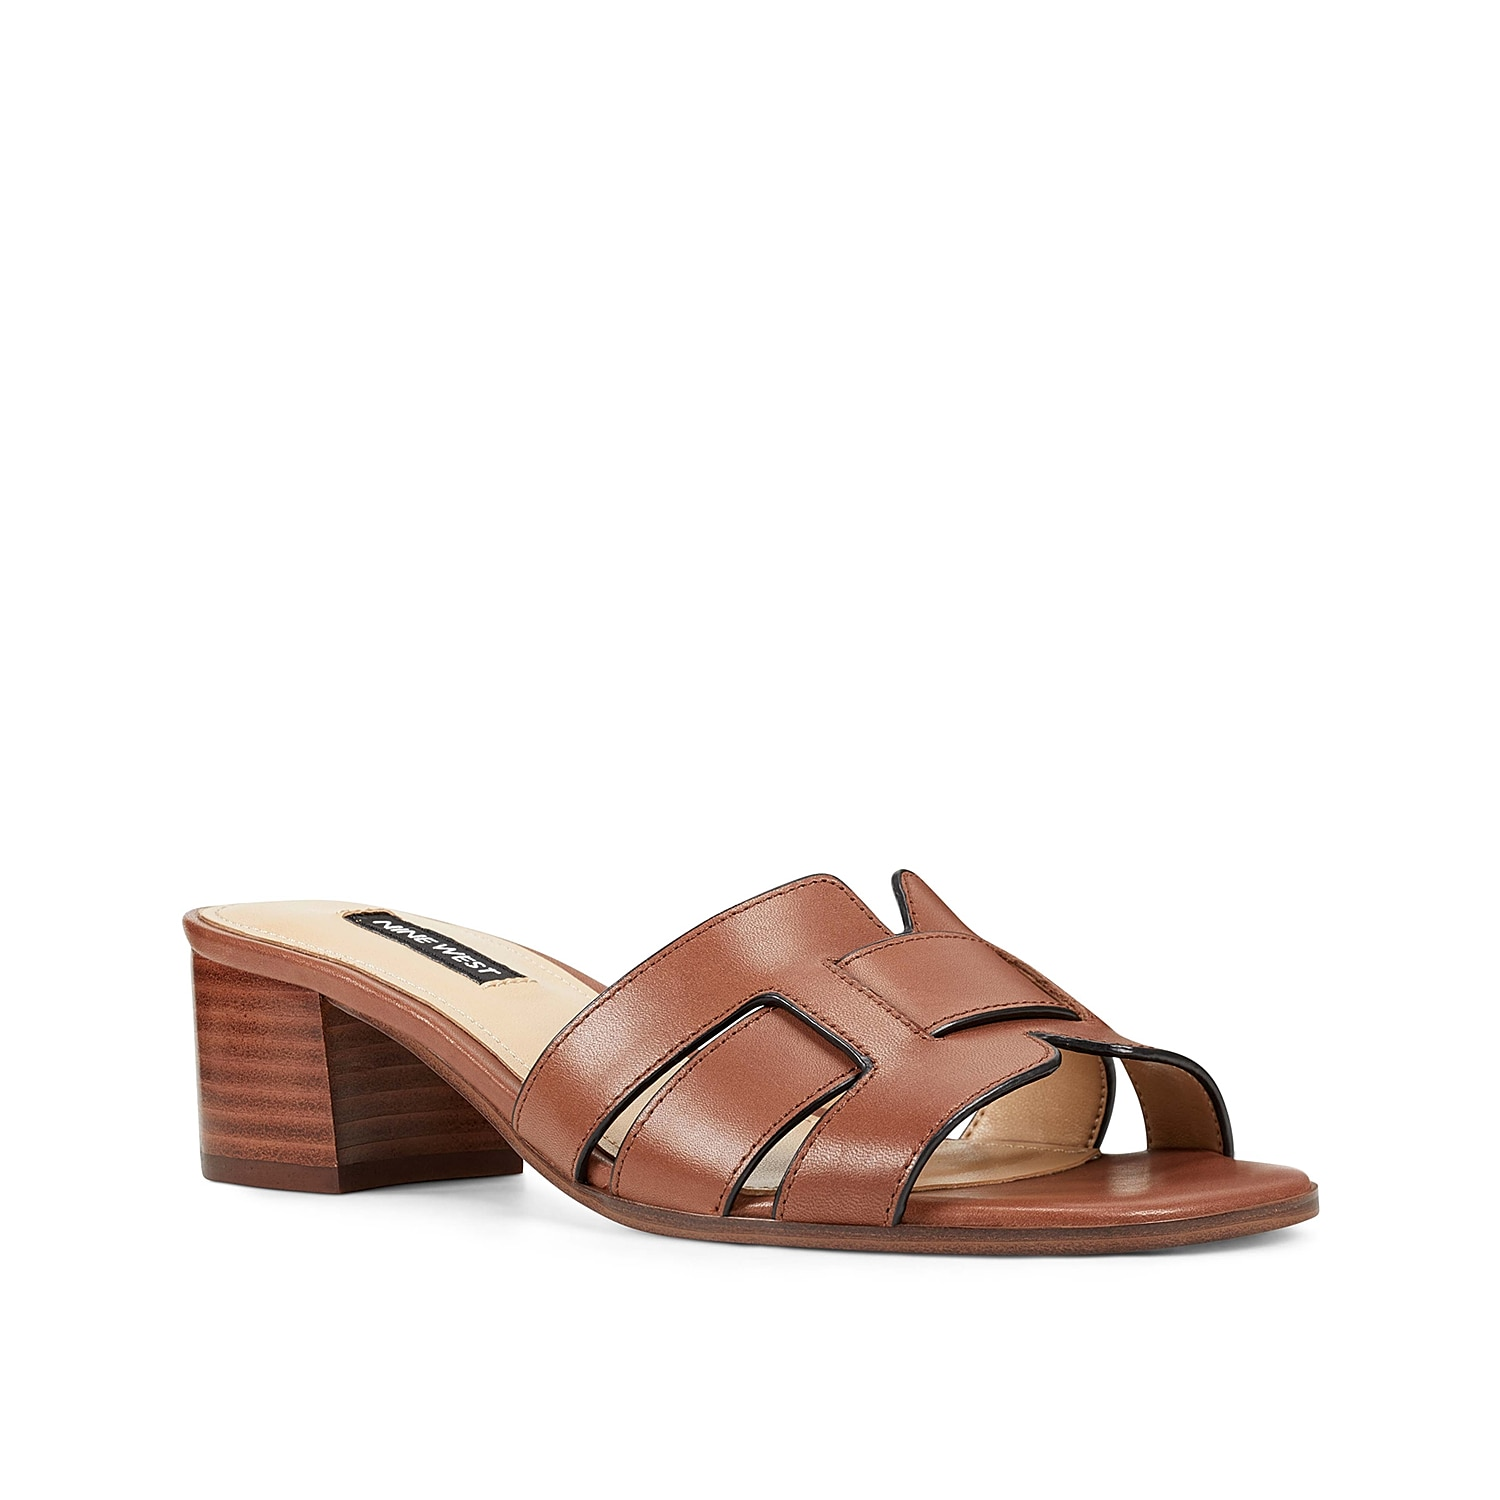 Slide into tailored appeal with the Gizella sandal from Nine West. This leather pair features intricately looped straps and a low block heel for modern style.